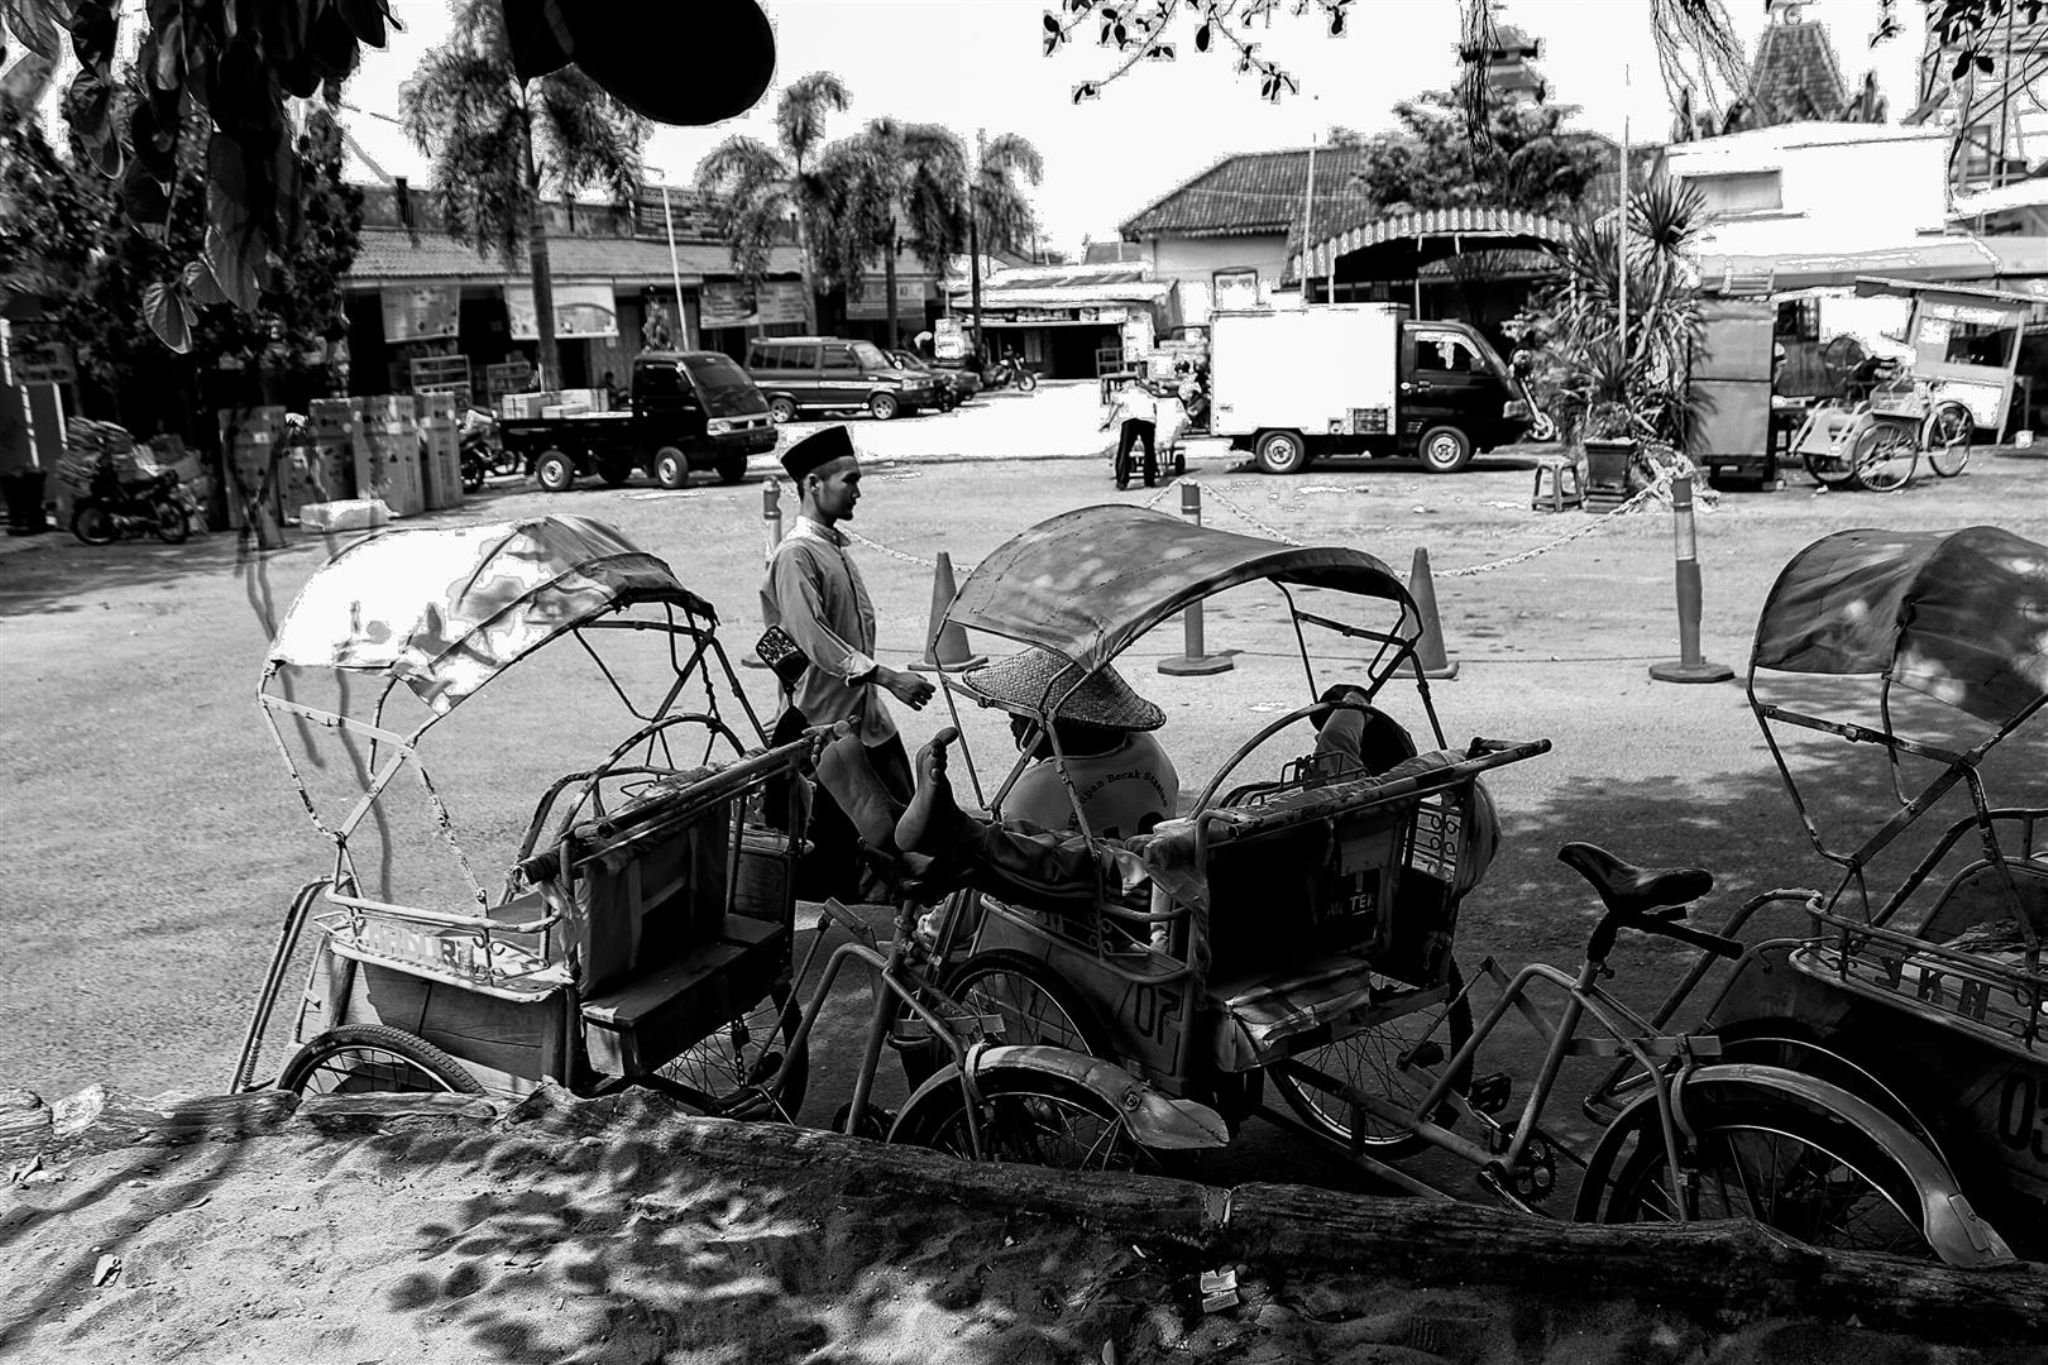 IndonesiaOnTheStreet #30 by Jo Simson